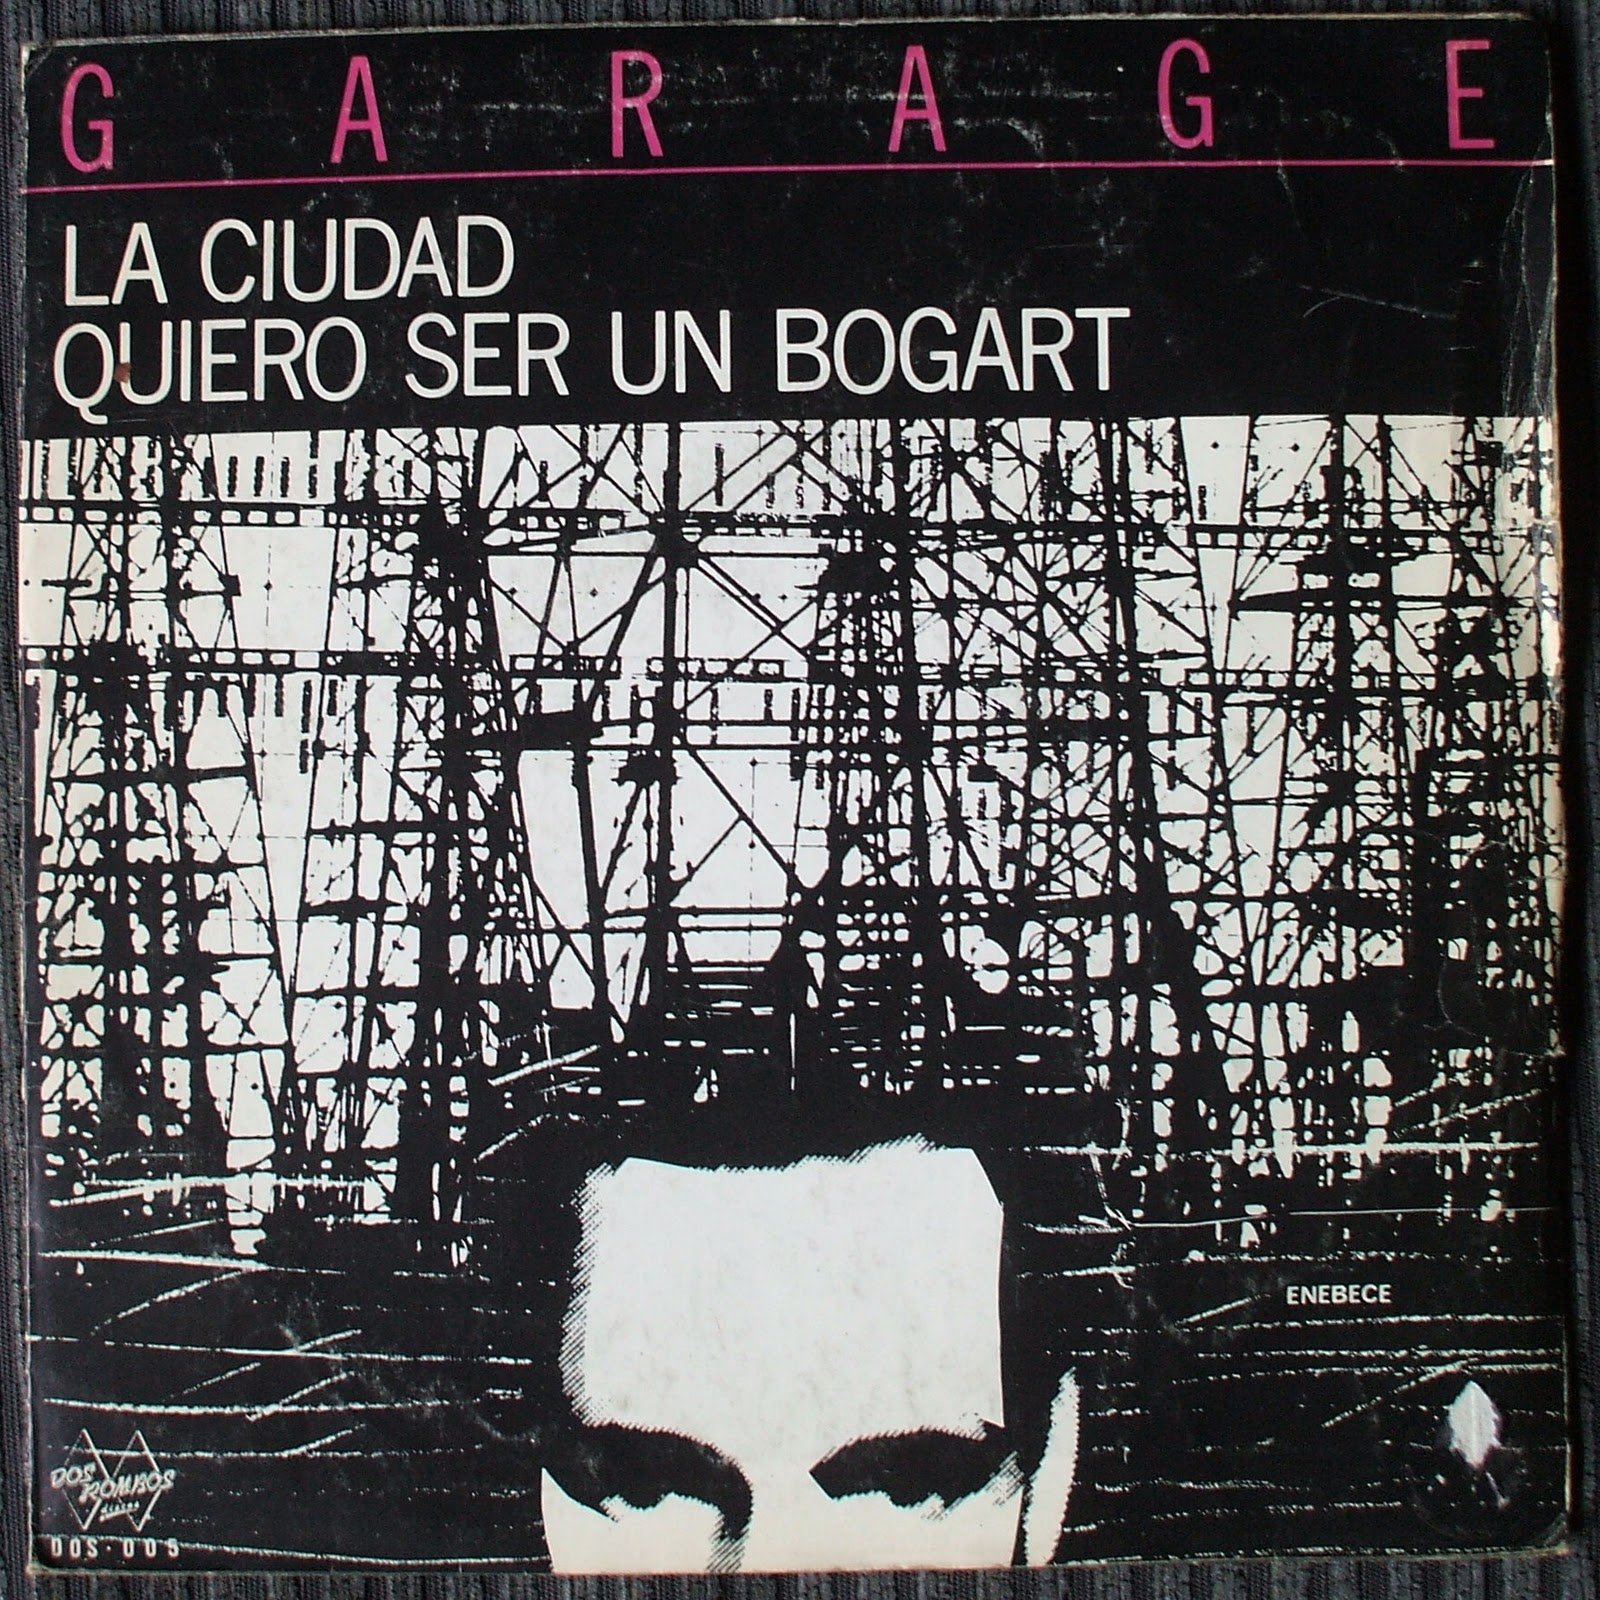 singles in bogart Neil bogart singles discography while the artist name is neil scott, this single was not recorded by the neil scott who would become neil bogart.